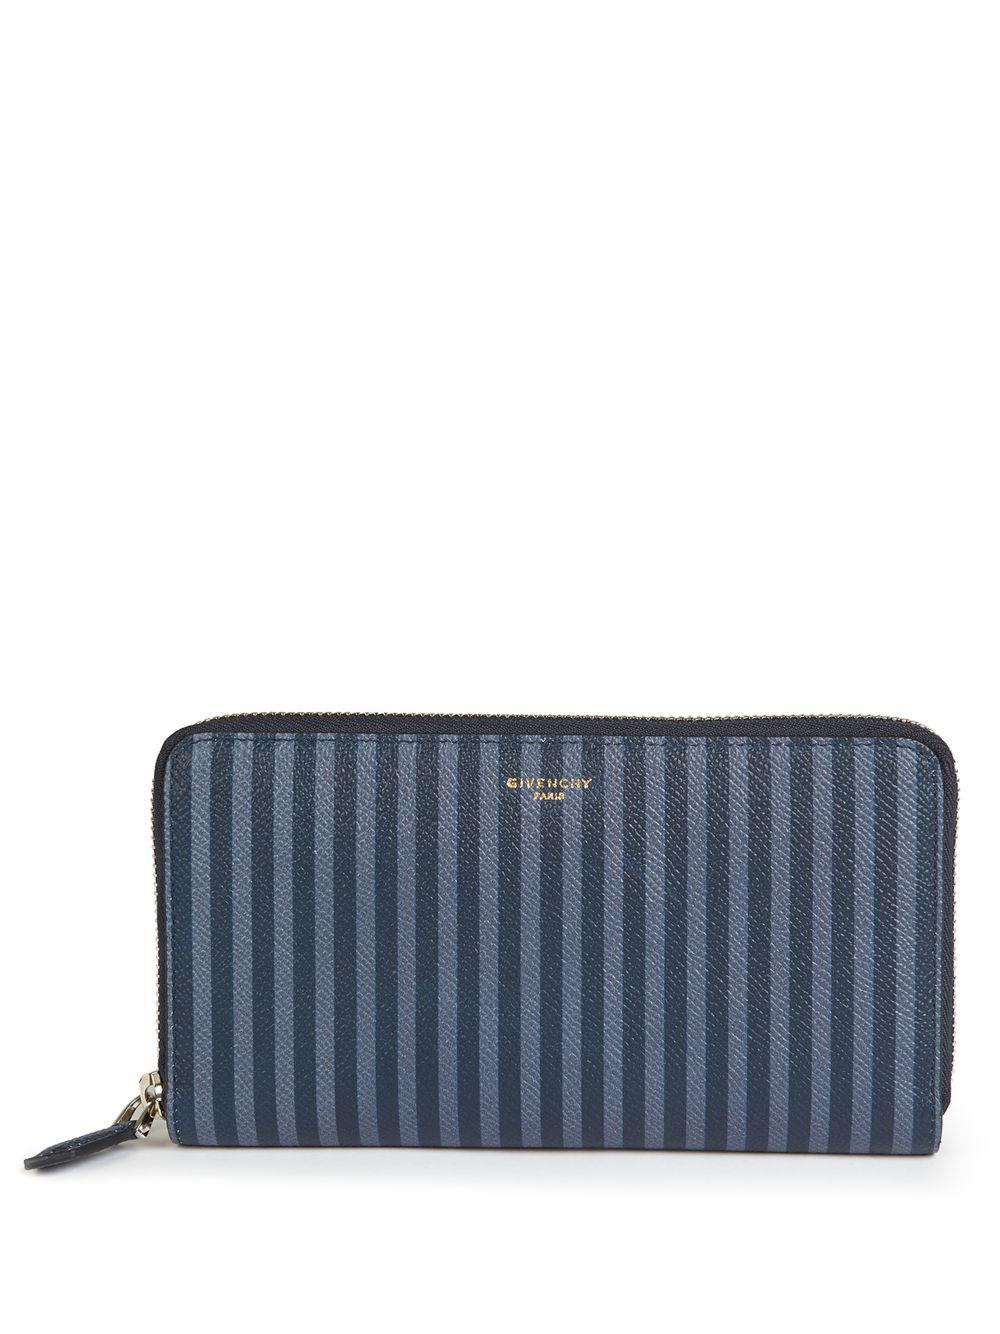 fdb8067d23b0d Givenchy - Blue Slg Striped Leather Zip-around Wallet for Men - Lyst. View  fullscreen